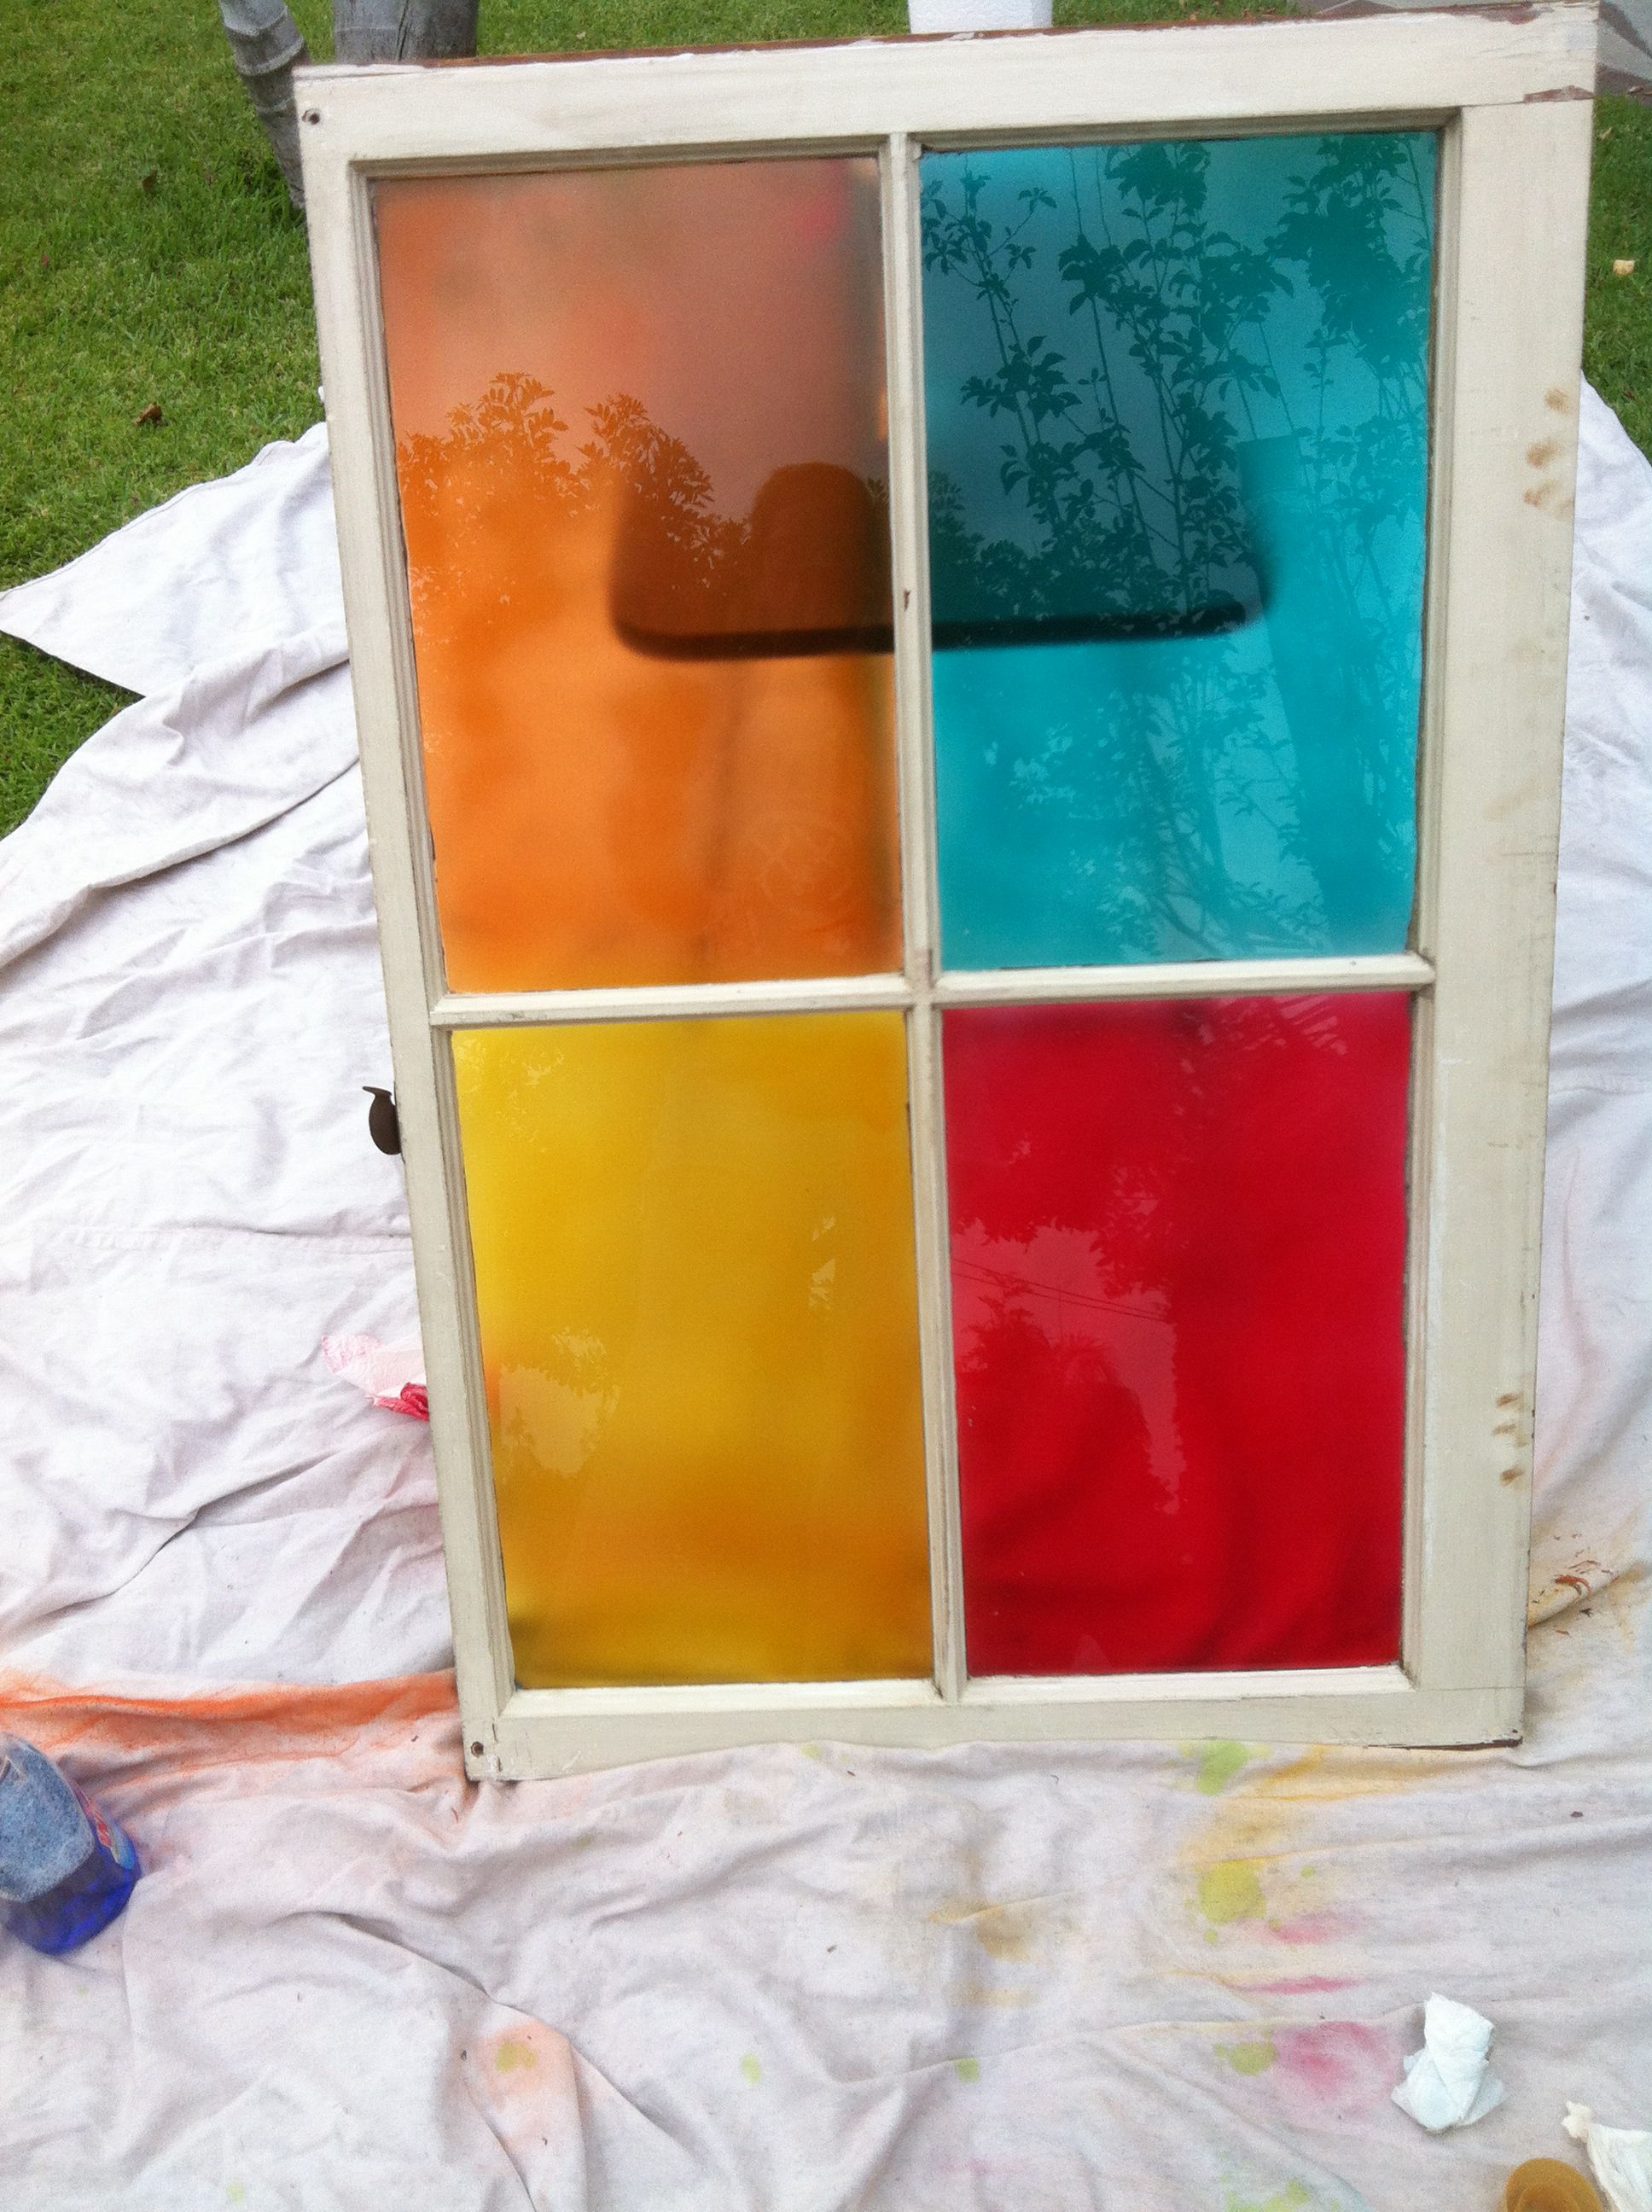 Diy Stained Glass On Old Window Pane With Design Master S Tint It Spray Paint Diy Stained Glass Window Stained Glass Diy Painting On Glass Windows